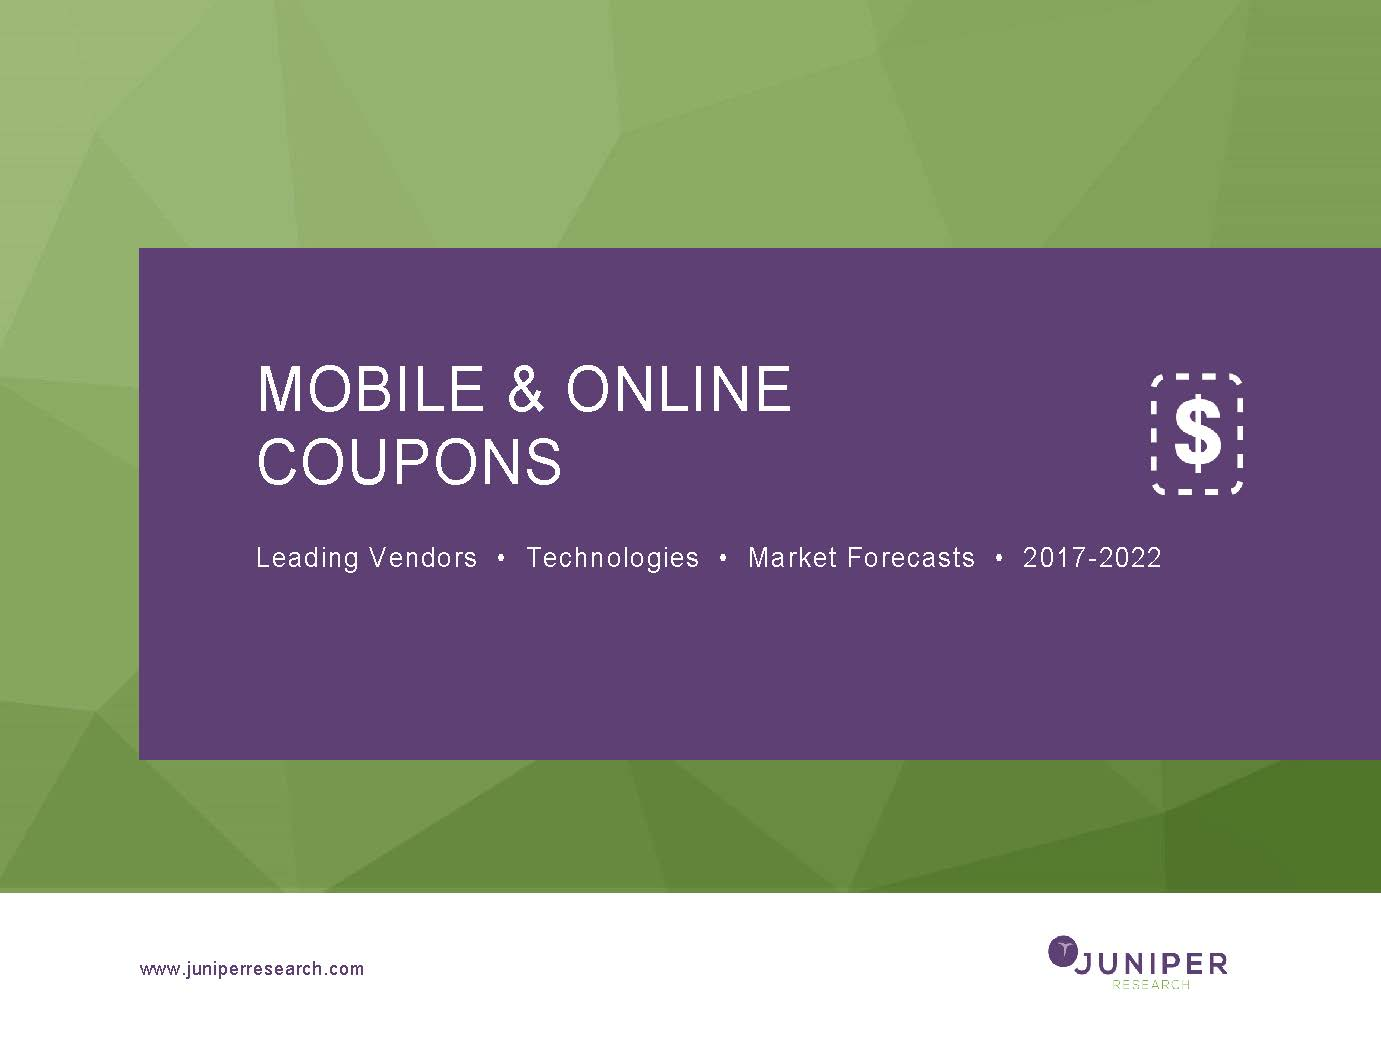 Mobile & Online Coupons - Deep Dive Data & Forecasting 2017-2022